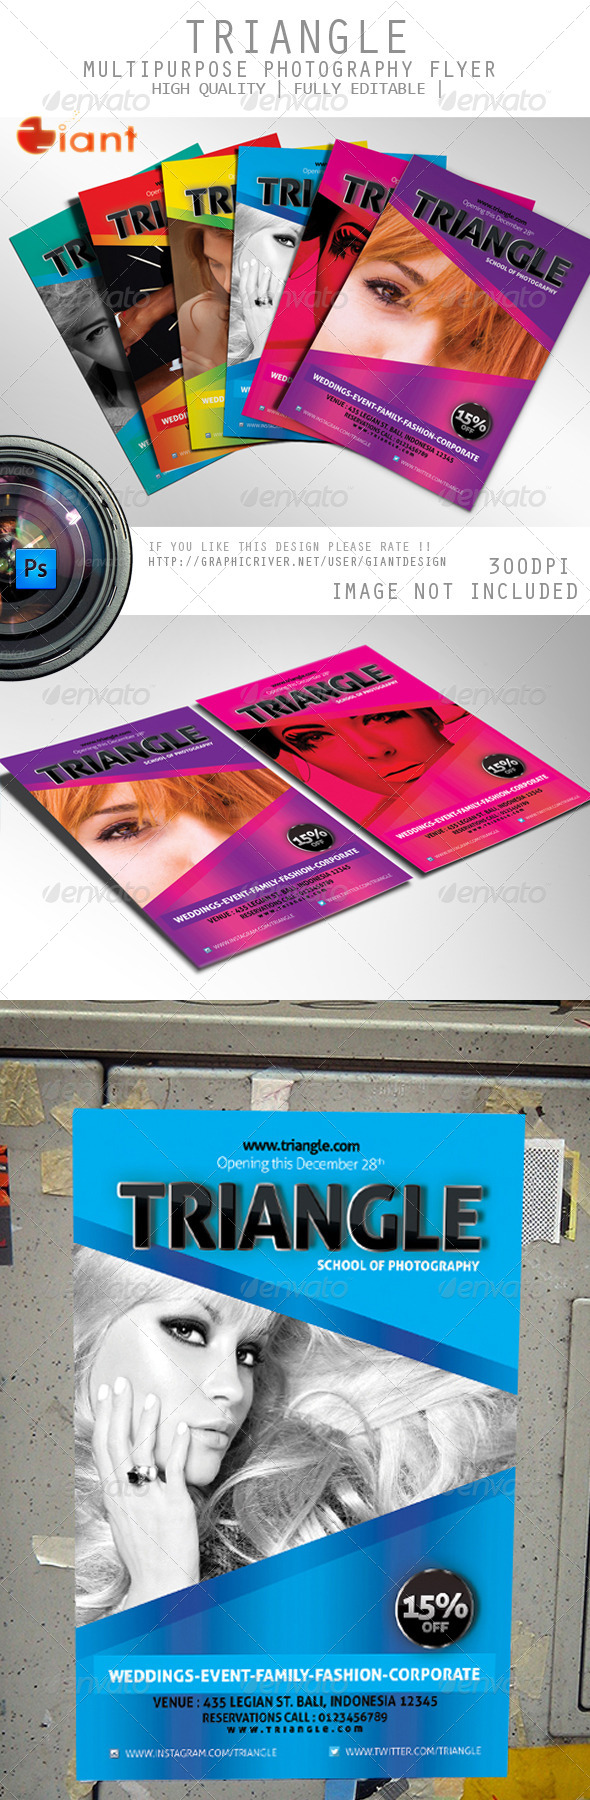 Triangle Multipurpose Photography Flyer